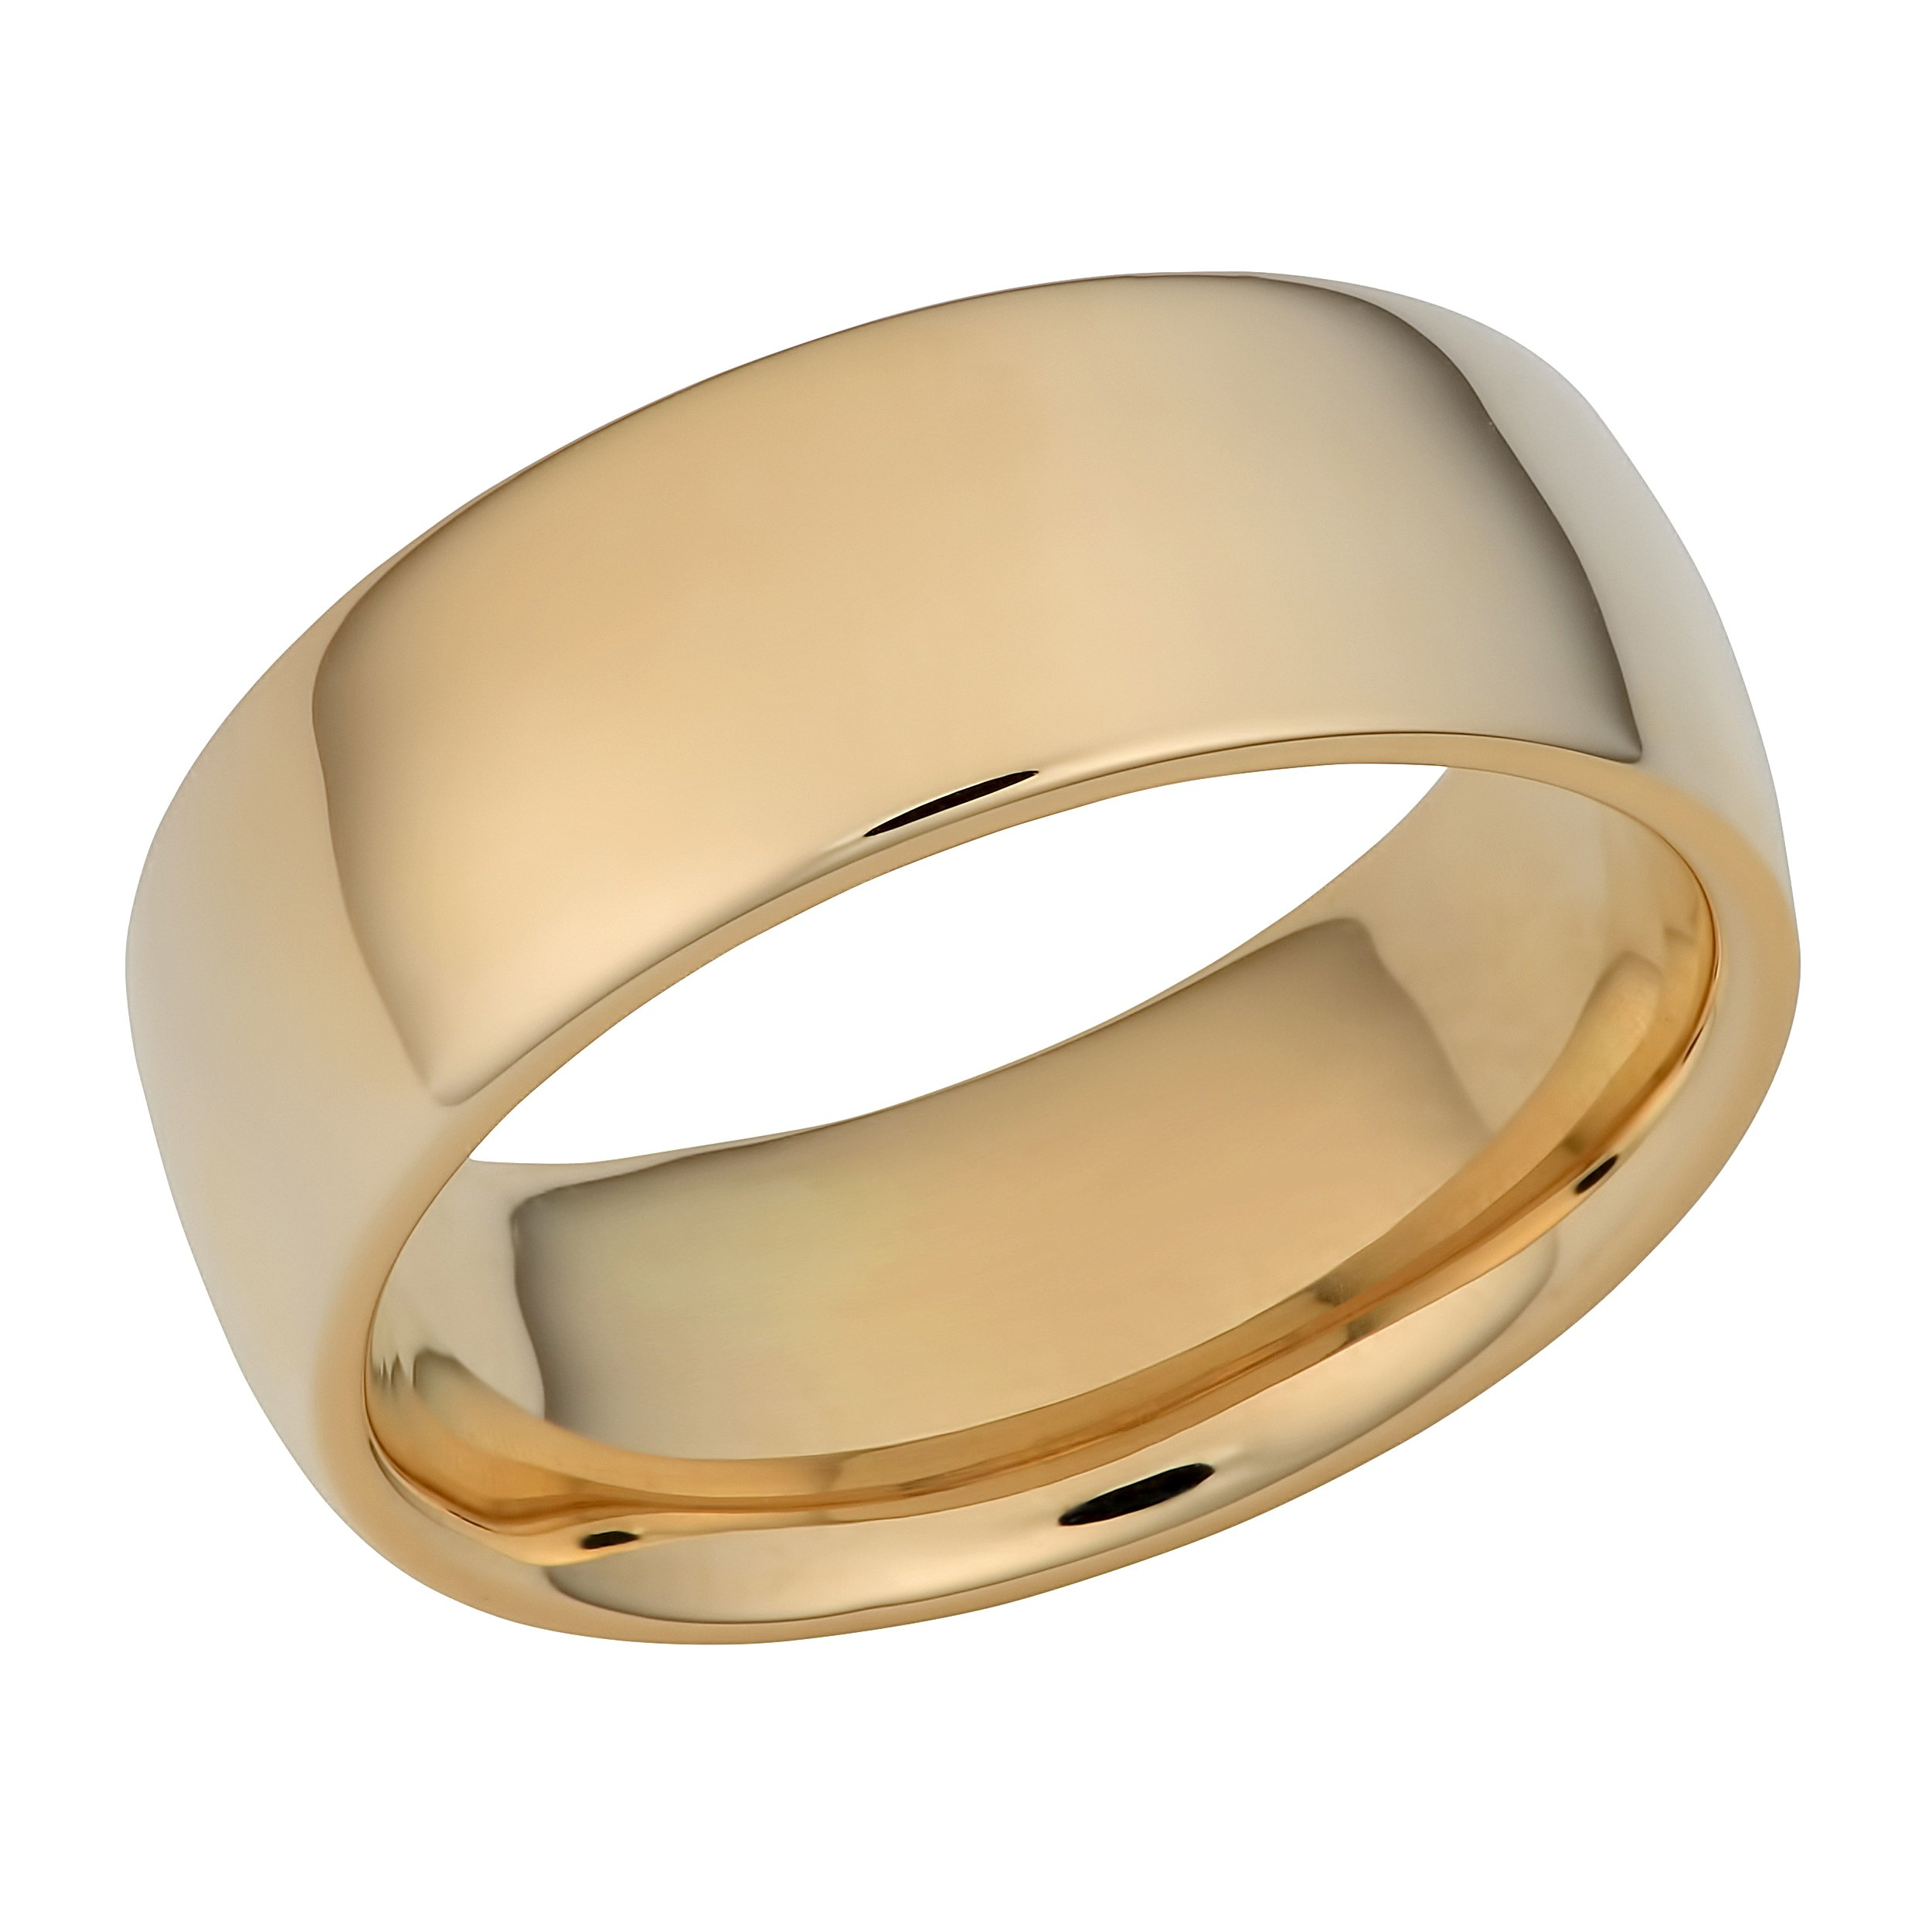 Kooljewelry 14k Yellow Gold 8 mm Comfort Fit Hollow Wedding Band (Size 11) by Kooljewelry